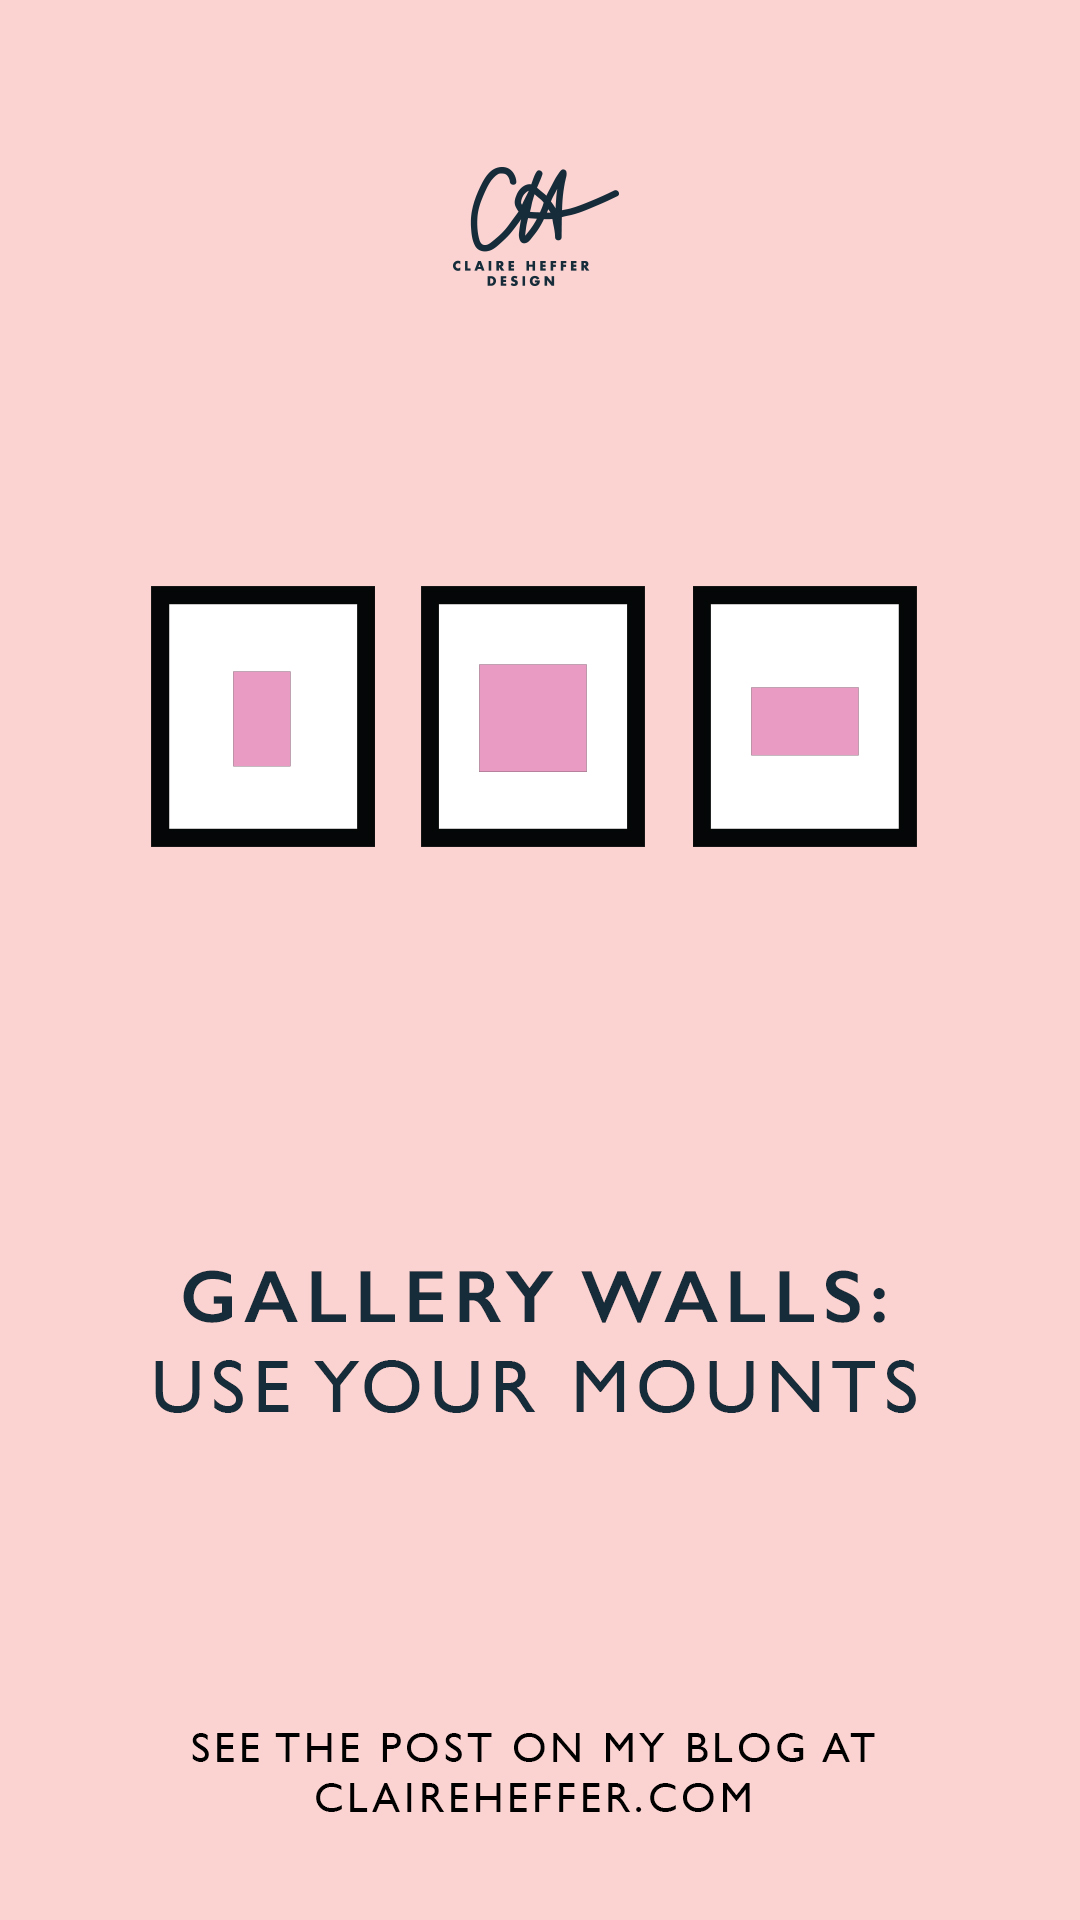 GALLERY WALLS USE YOUR MOUNTS.jpg